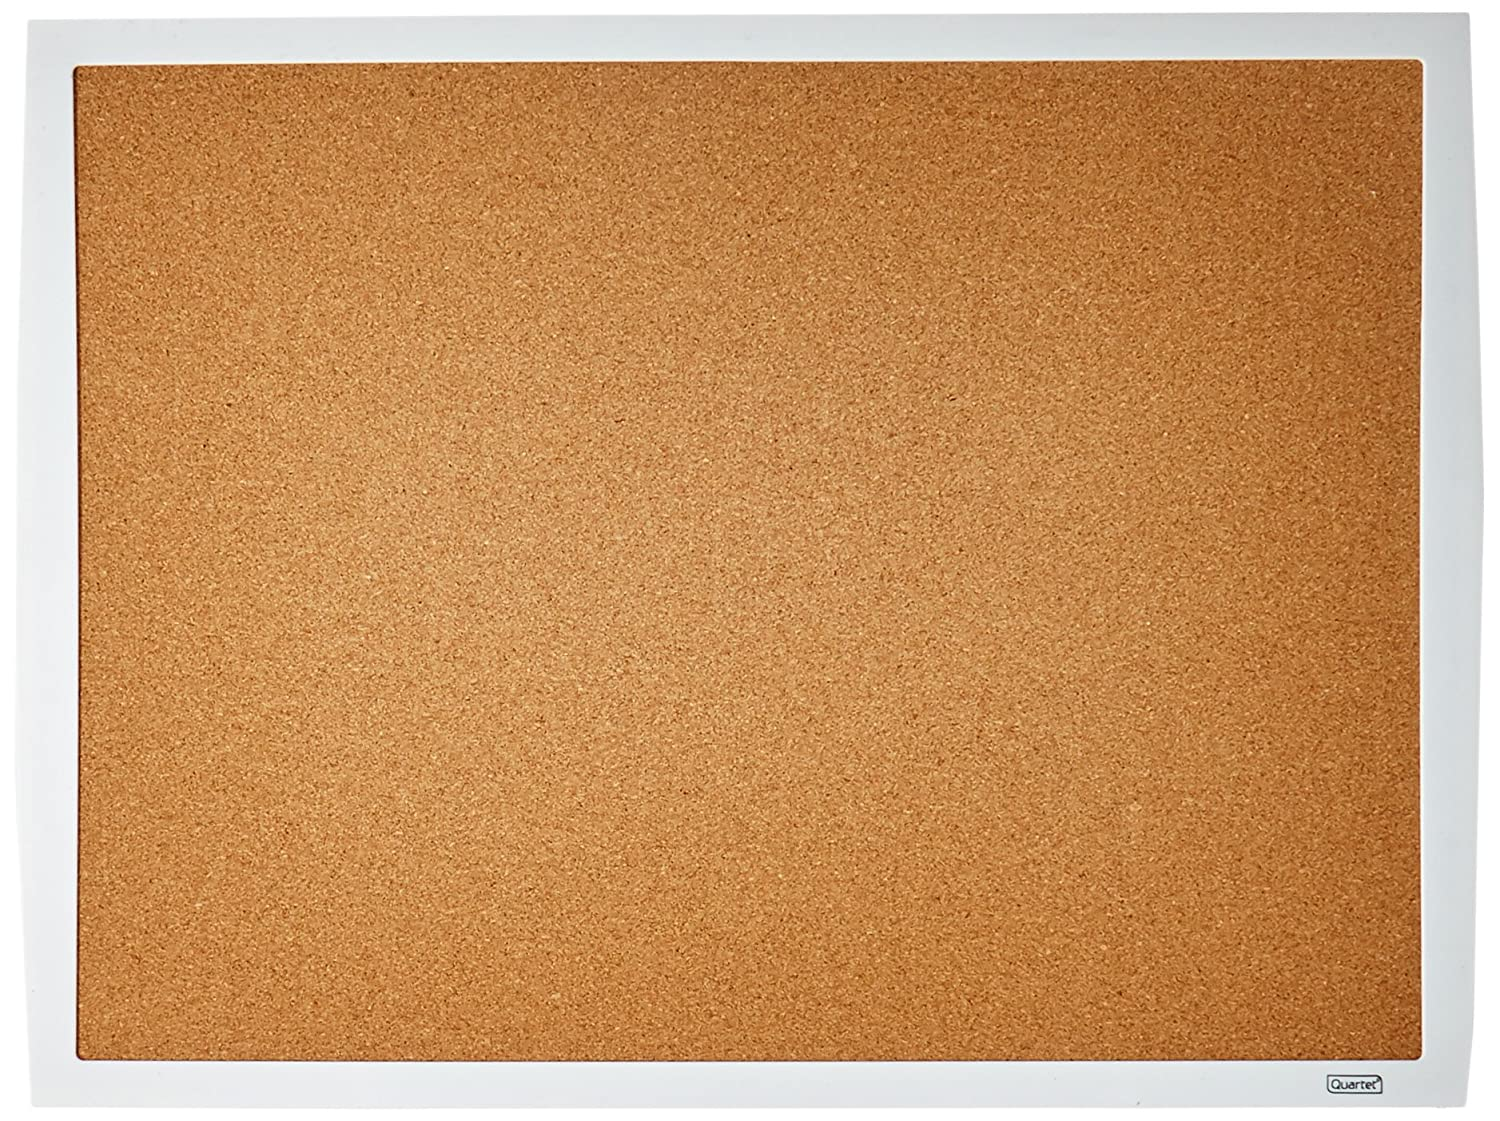 Quartet Cork Bulletin Board, 17x23, White Frame (33271-WT) 17x23 ACCO Brands